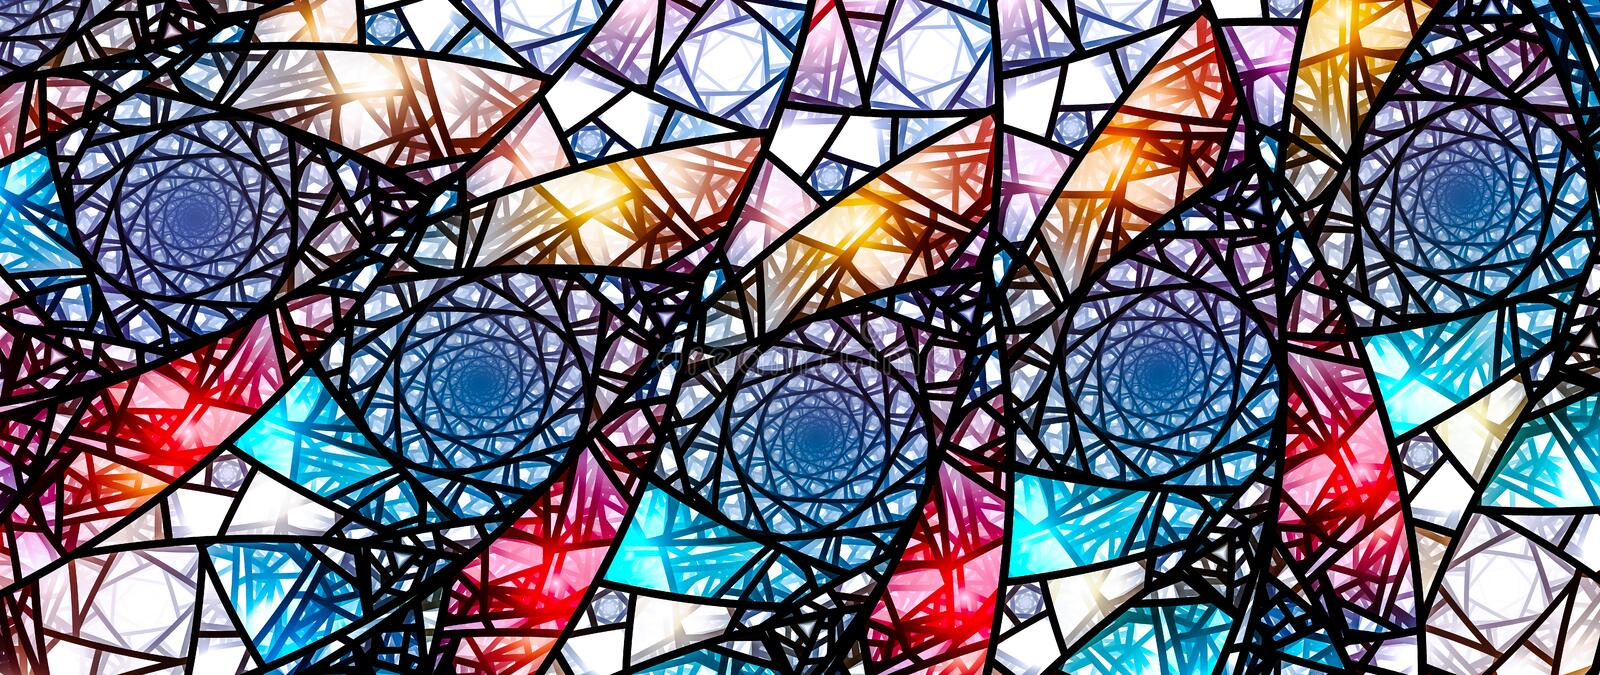 Colorful glowing stained glass, computer generated abstract background 8k widescreen vector illustration